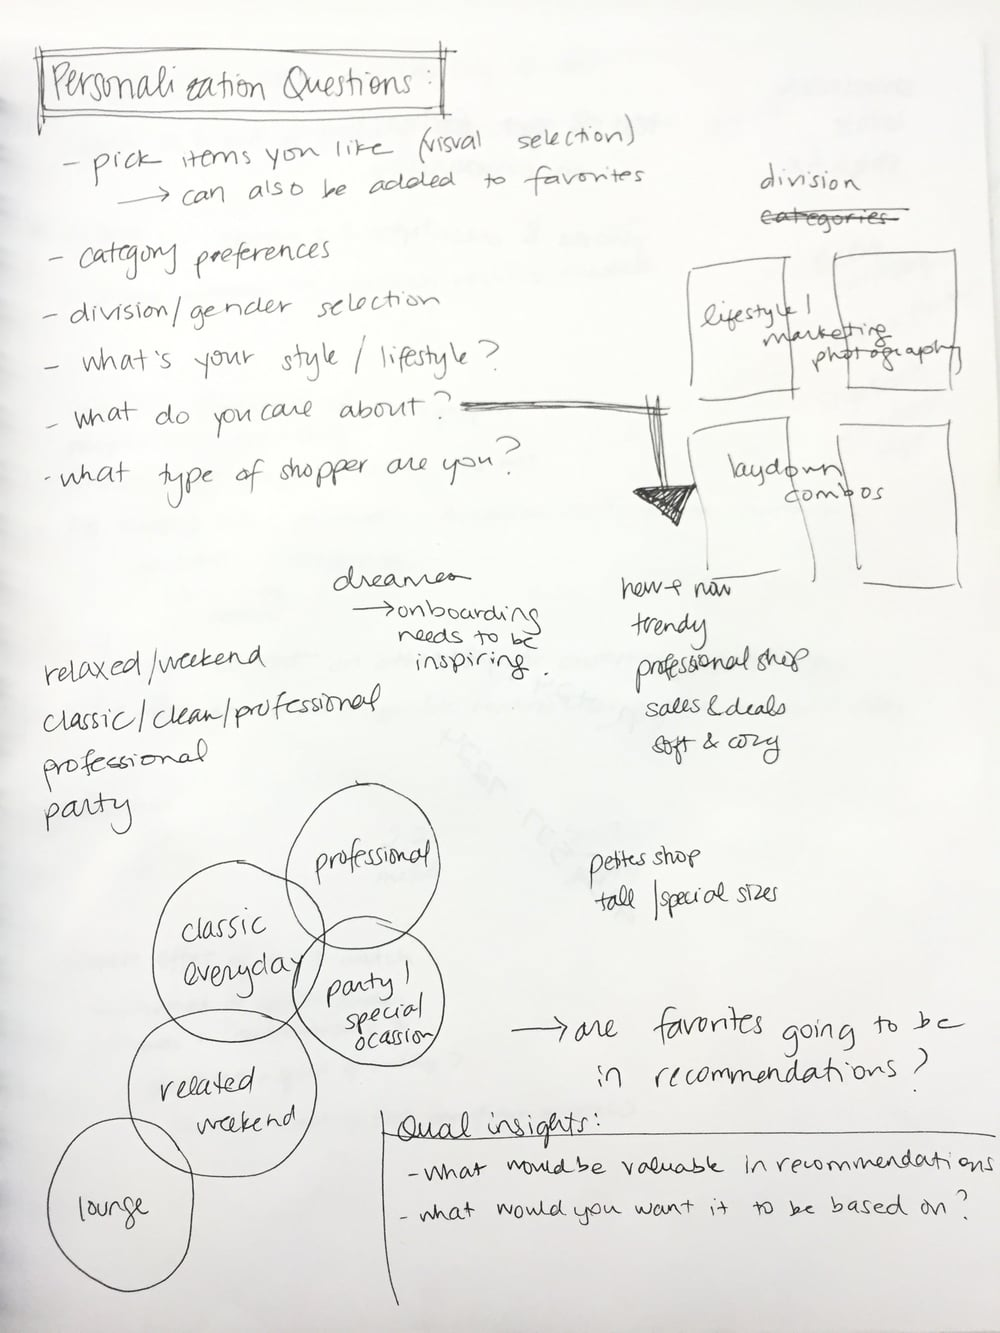 Some sketching - thinking about the 'empty state' for users that do not have product recommendations, and how we can gather data to create recommendations.